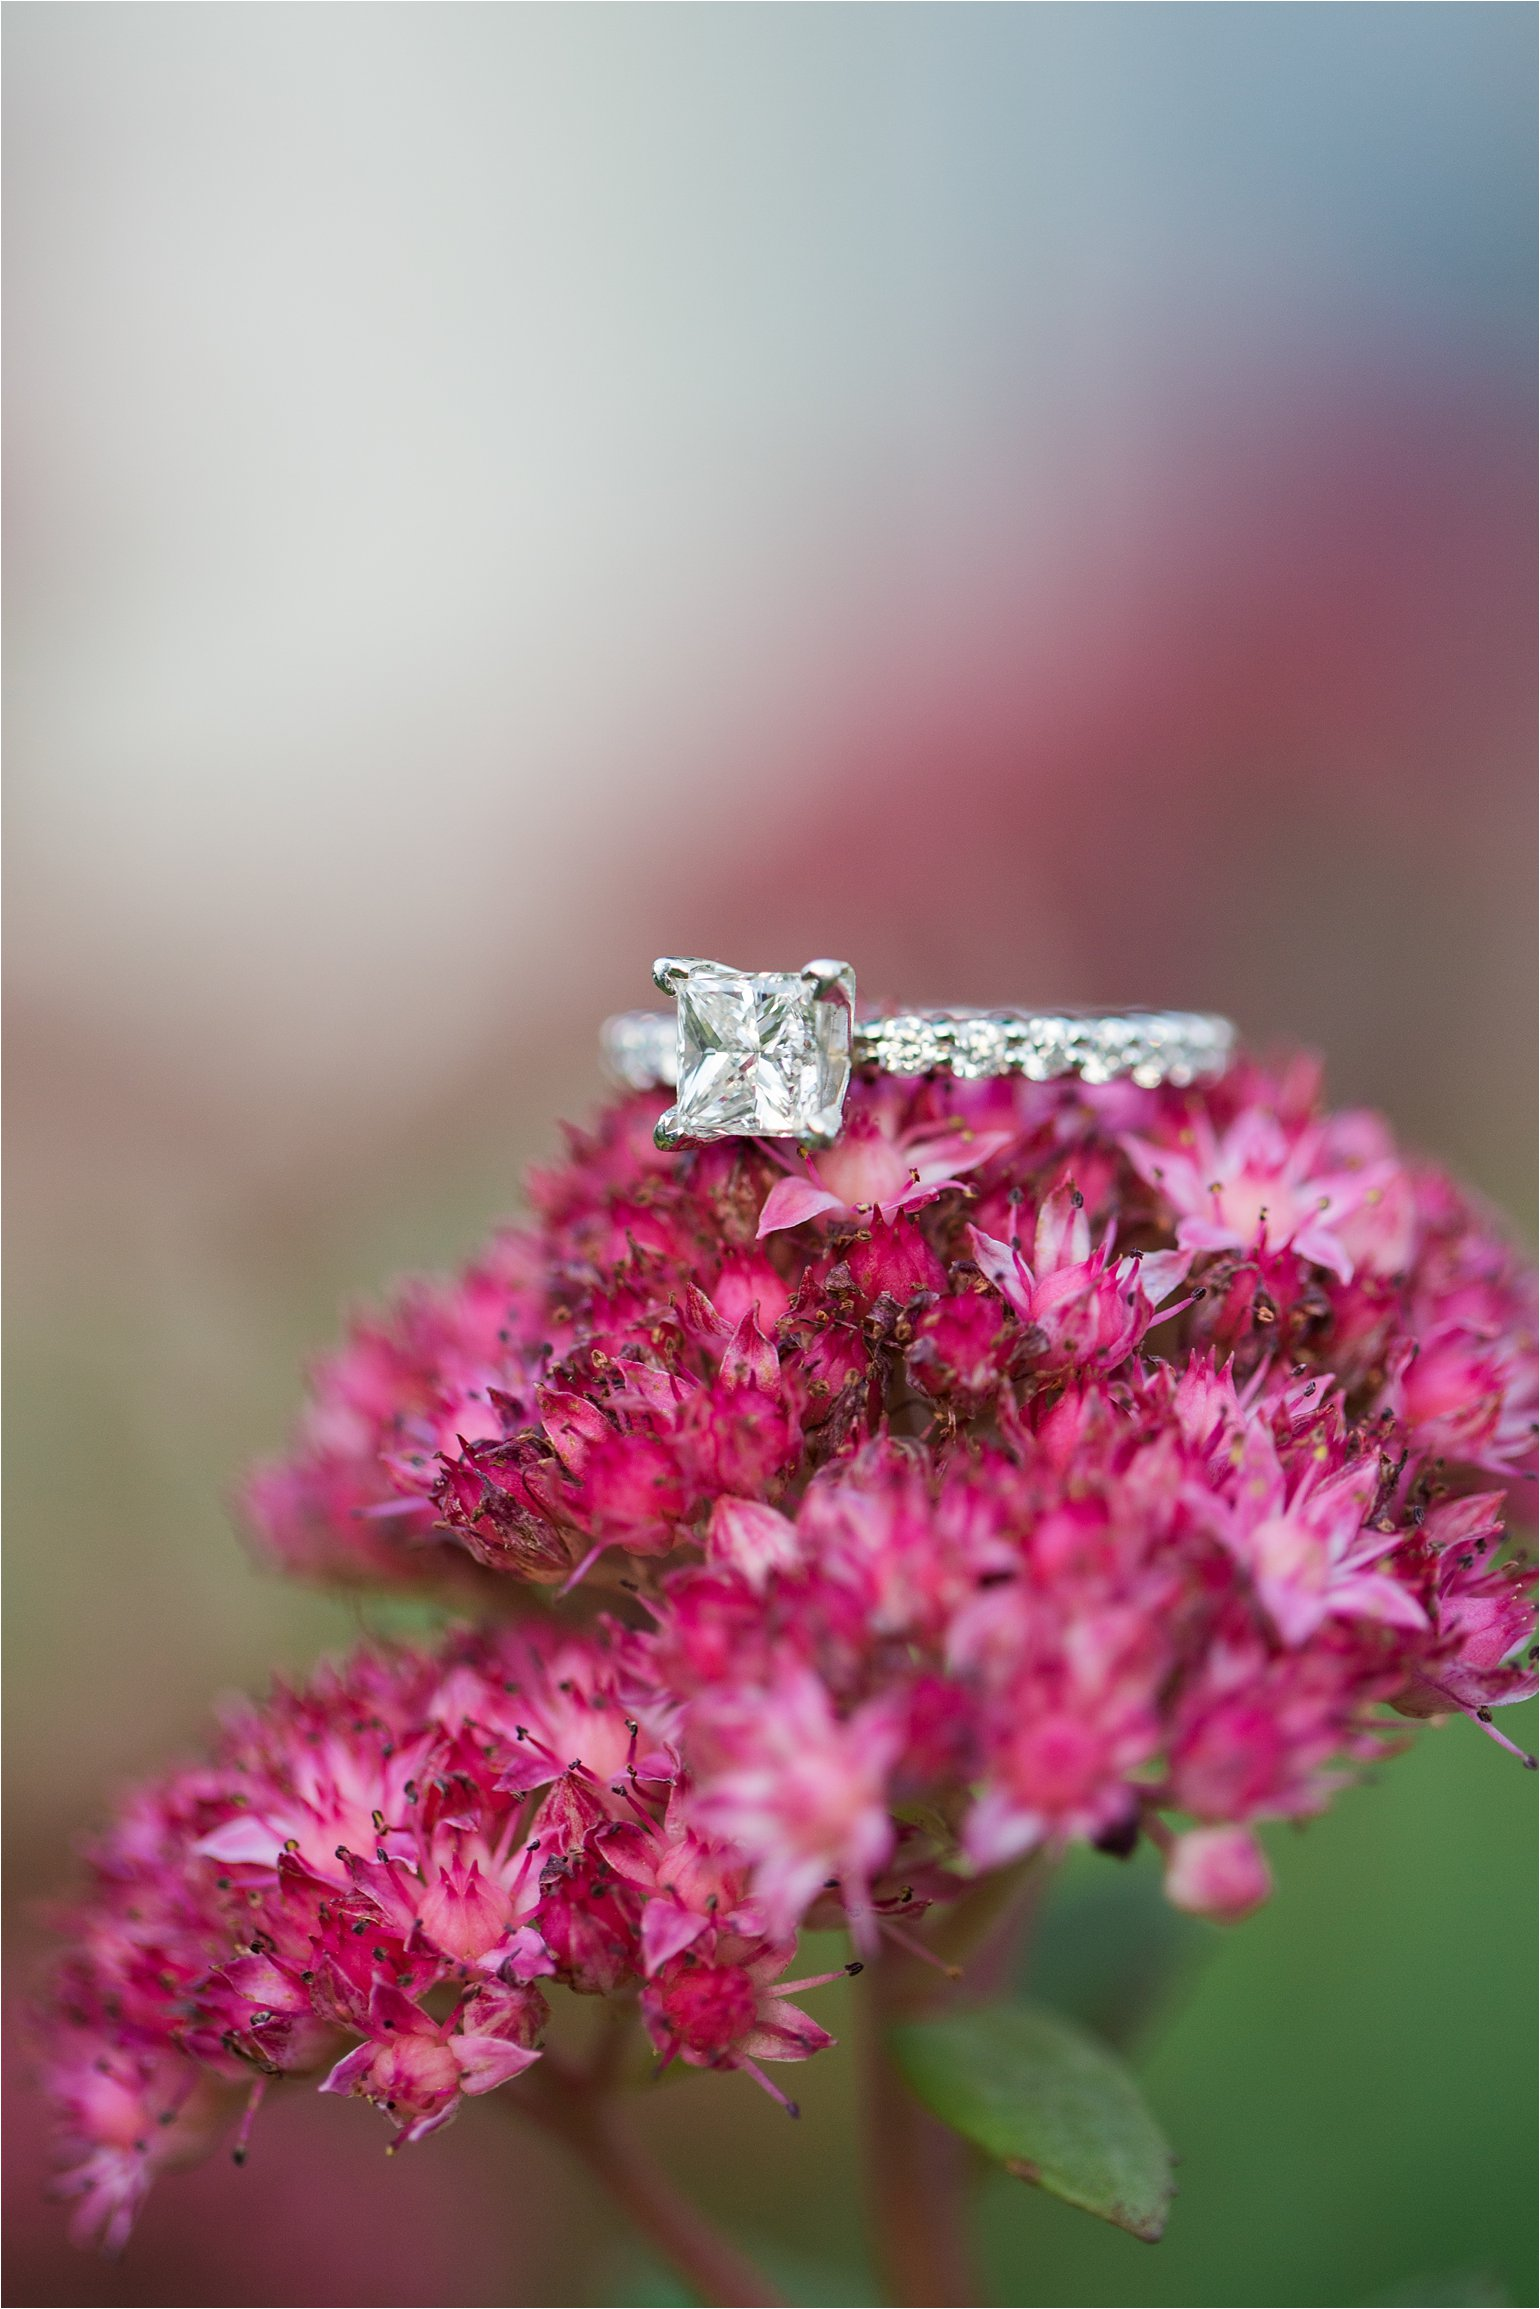 Engagement ring on flowers © 2015 Maundy Mitchell